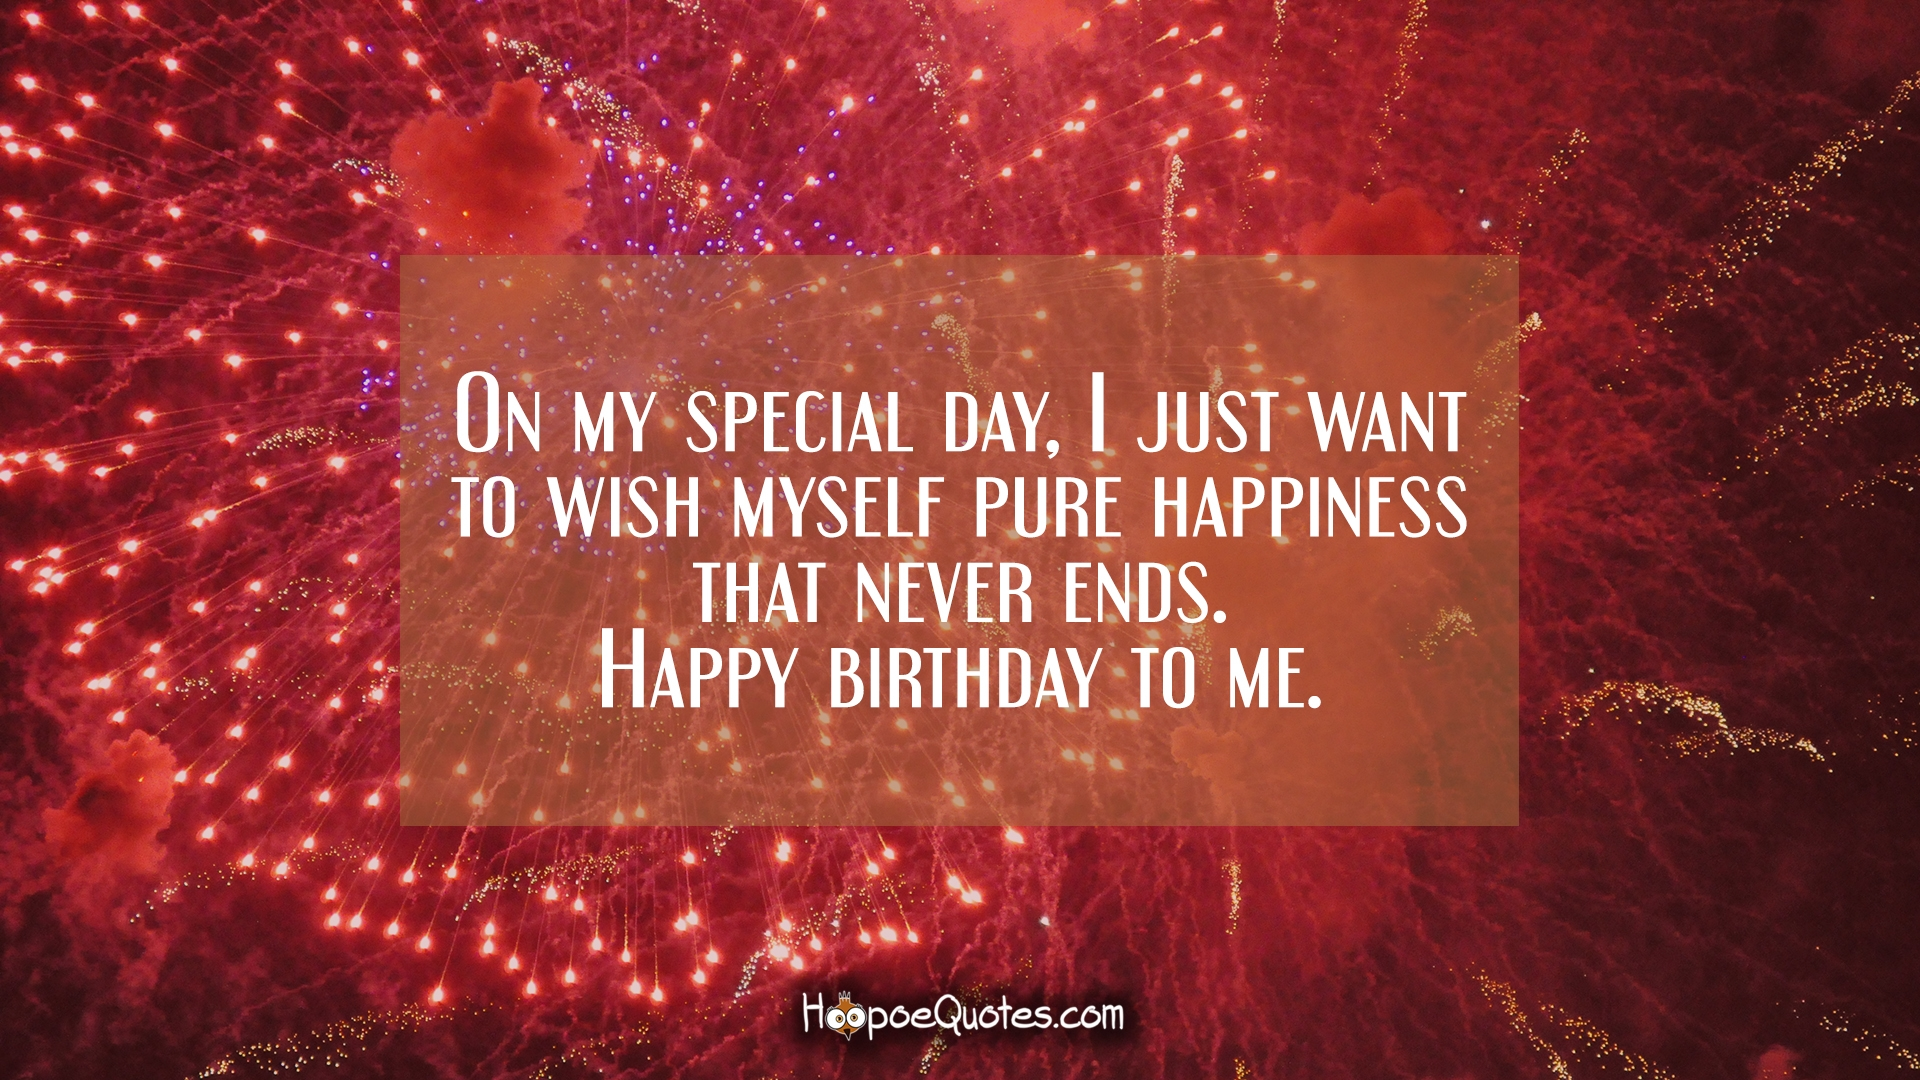 i want to wish myself happy birthday message ; 71287a7f6976f4d4d8ad0d822e40e2d5